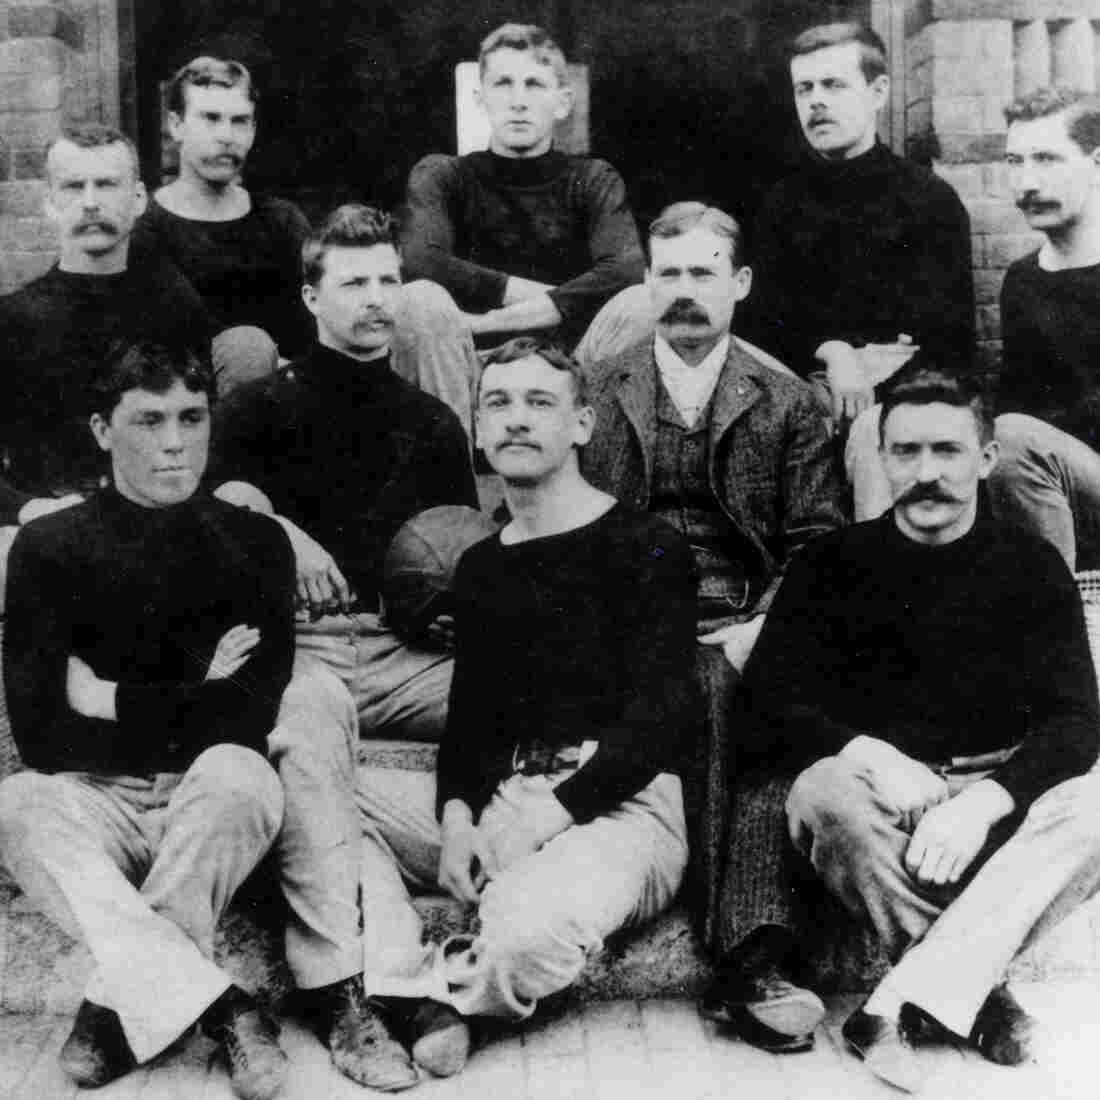 The first known basketball team at the International YMCA Training School in Springfield, Mass., 1892